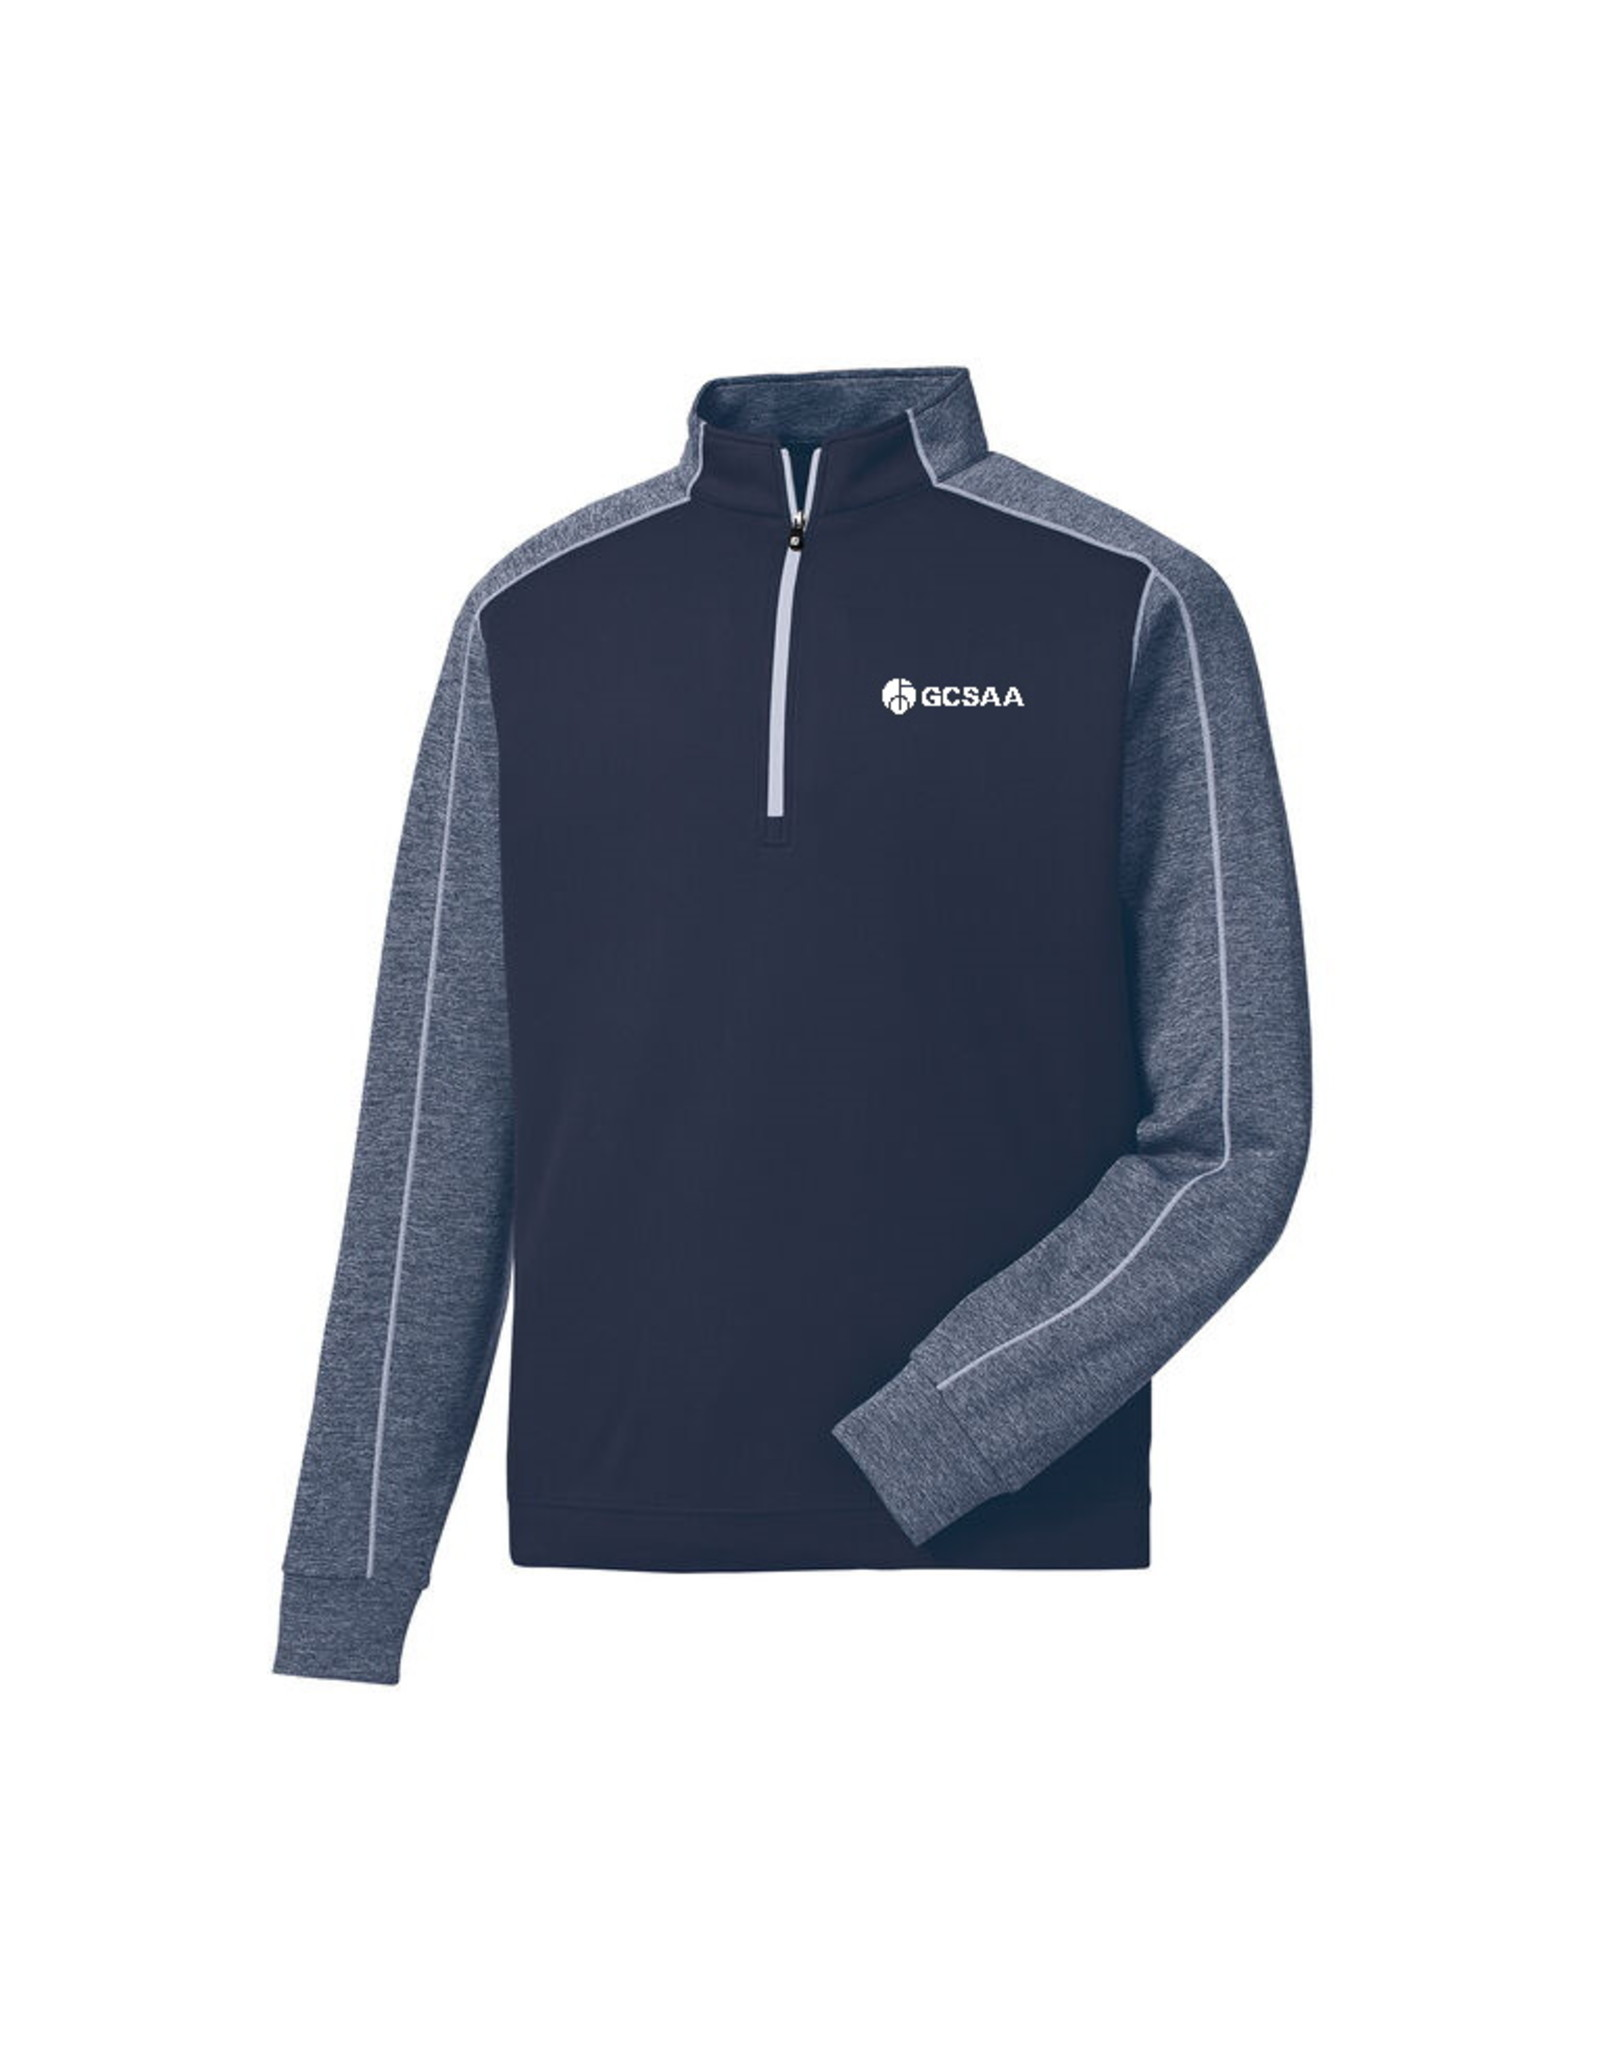 FootJoy FootJoy Tonal Heather 1/2 Zip